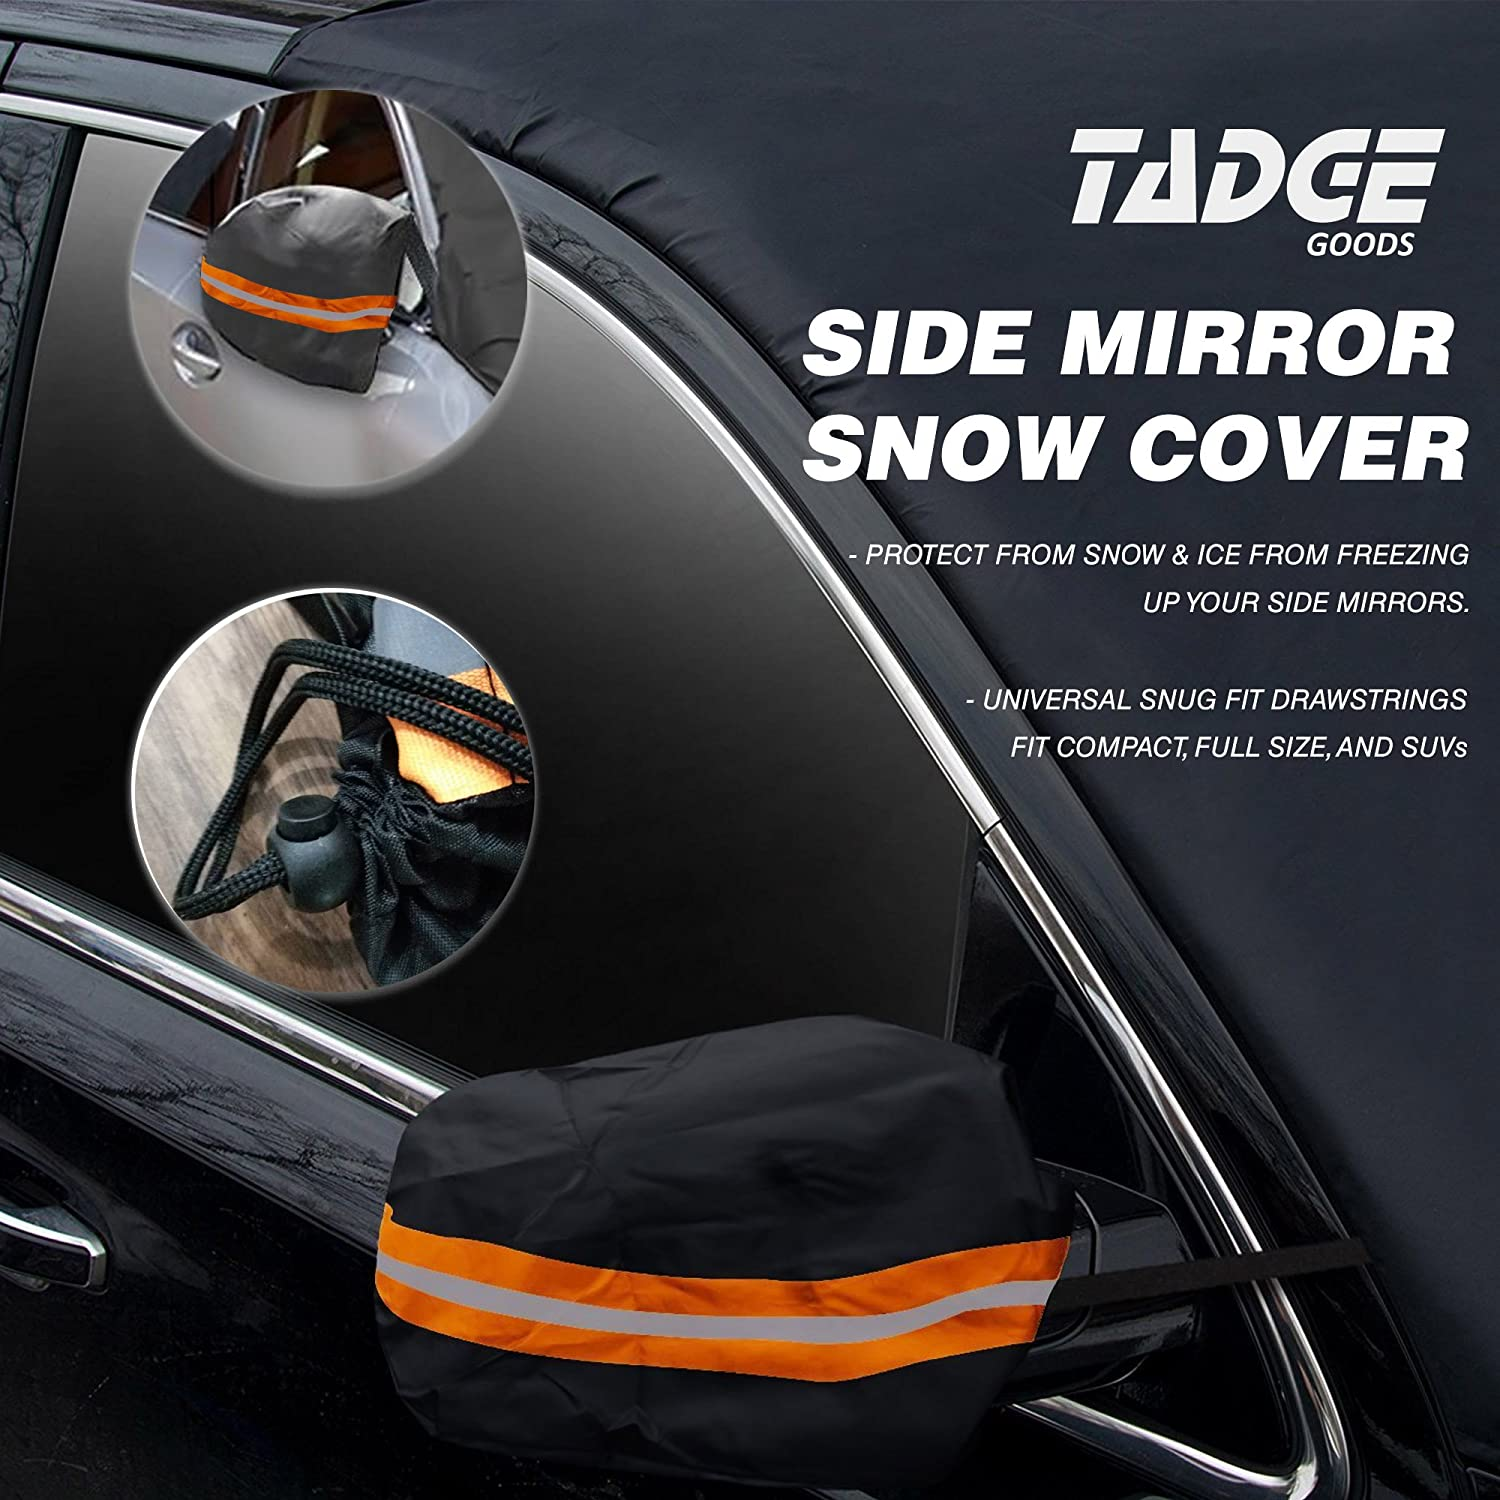 Smart Frost Guard Winter Protector Fits Car Free Bonus Ice Scraper /& Travel Pouch Truck Van SUV Tadge Goods XL Magnetic Ice Shield Snow Cover for Windshield